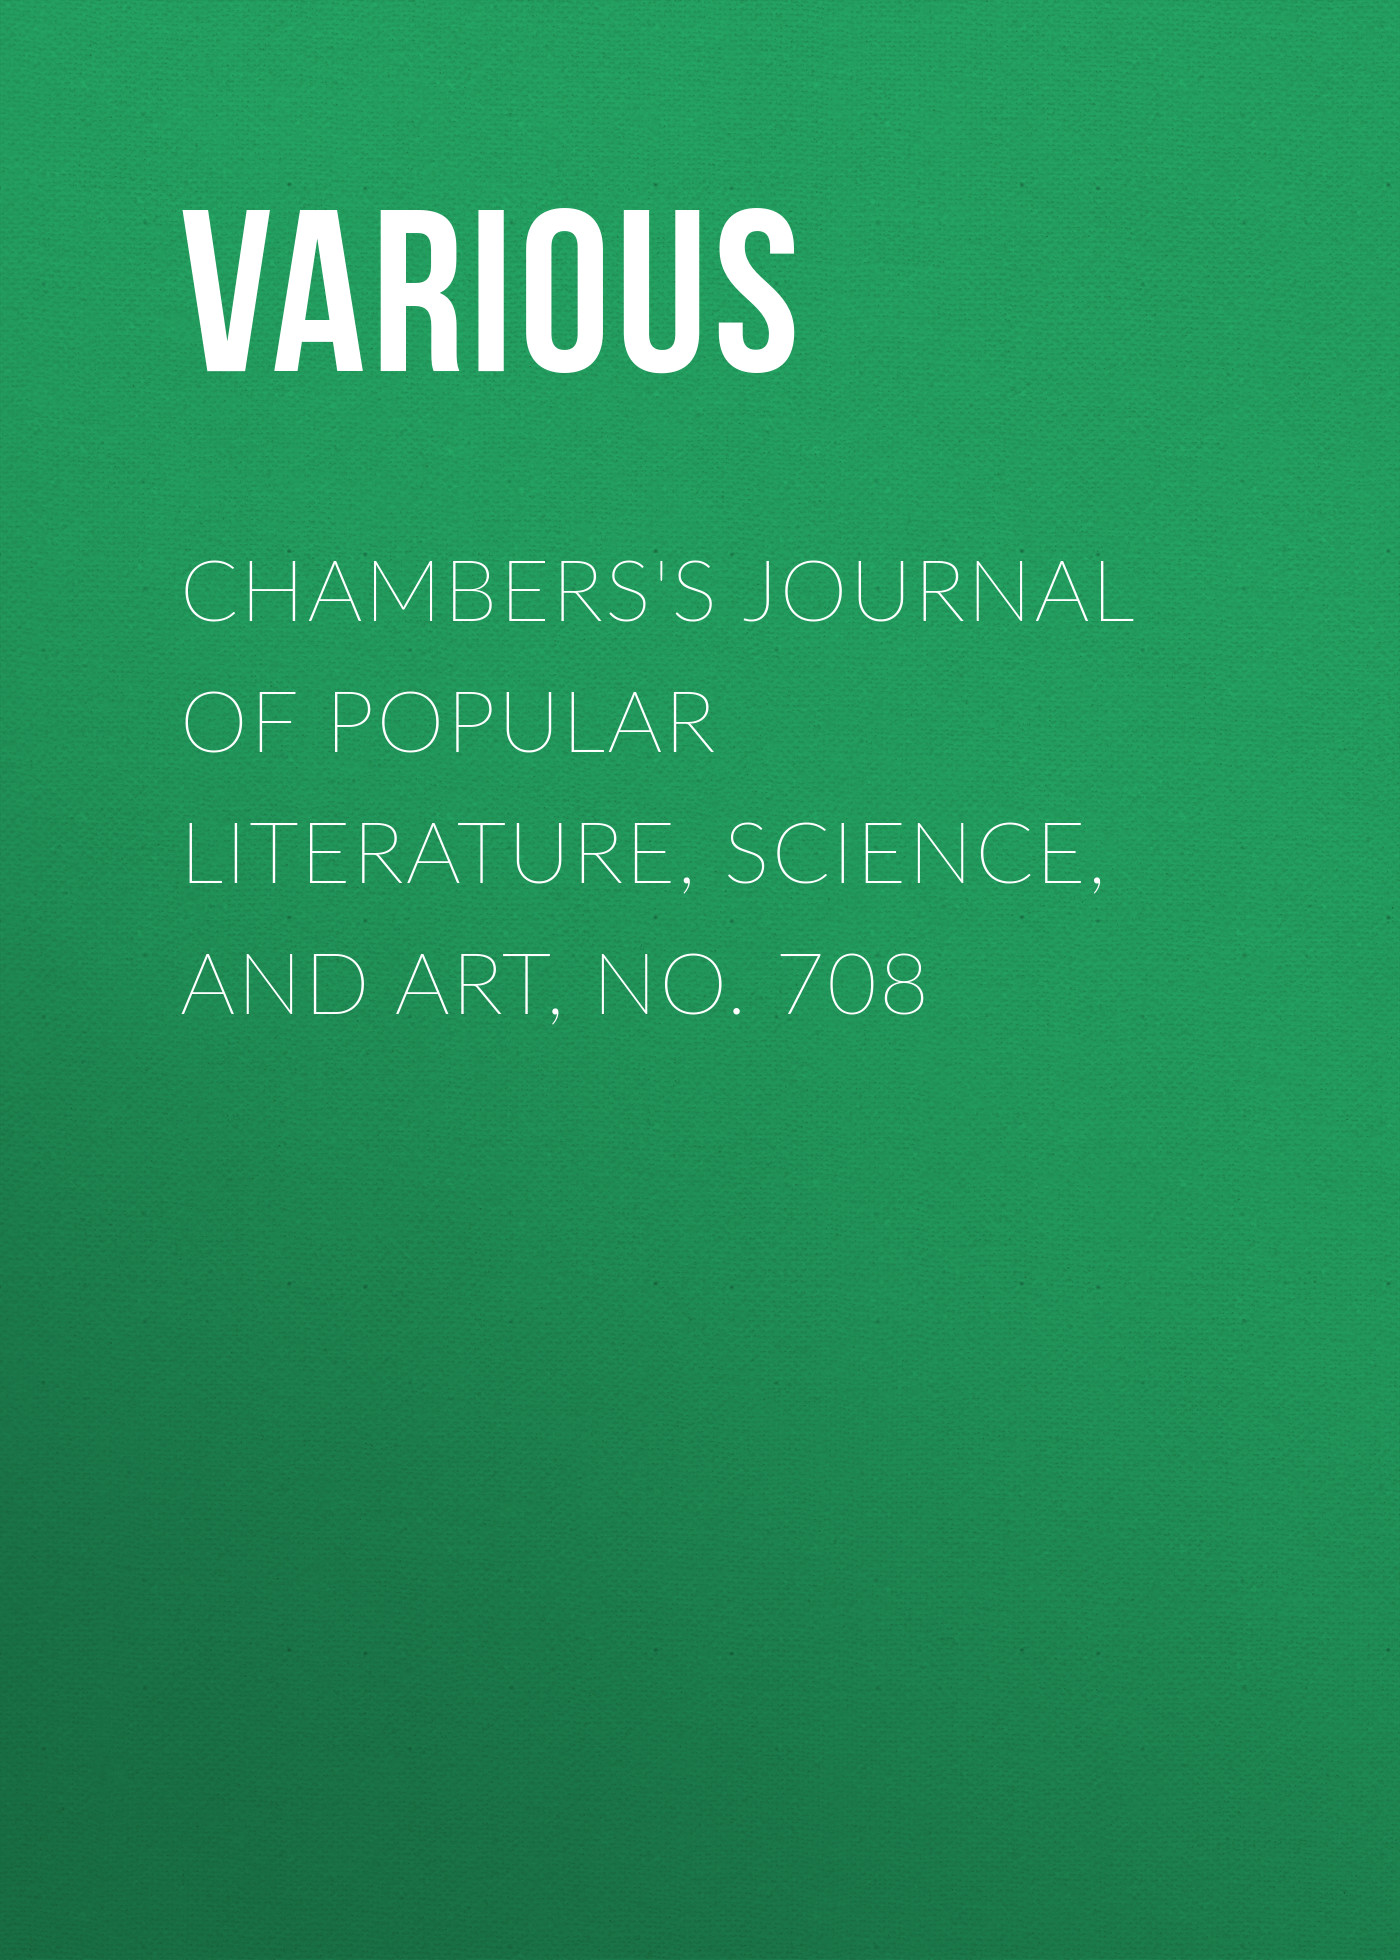 Chambers\'s Journal of Popular Literature, Science, and Art, No. 708 ( Various  )